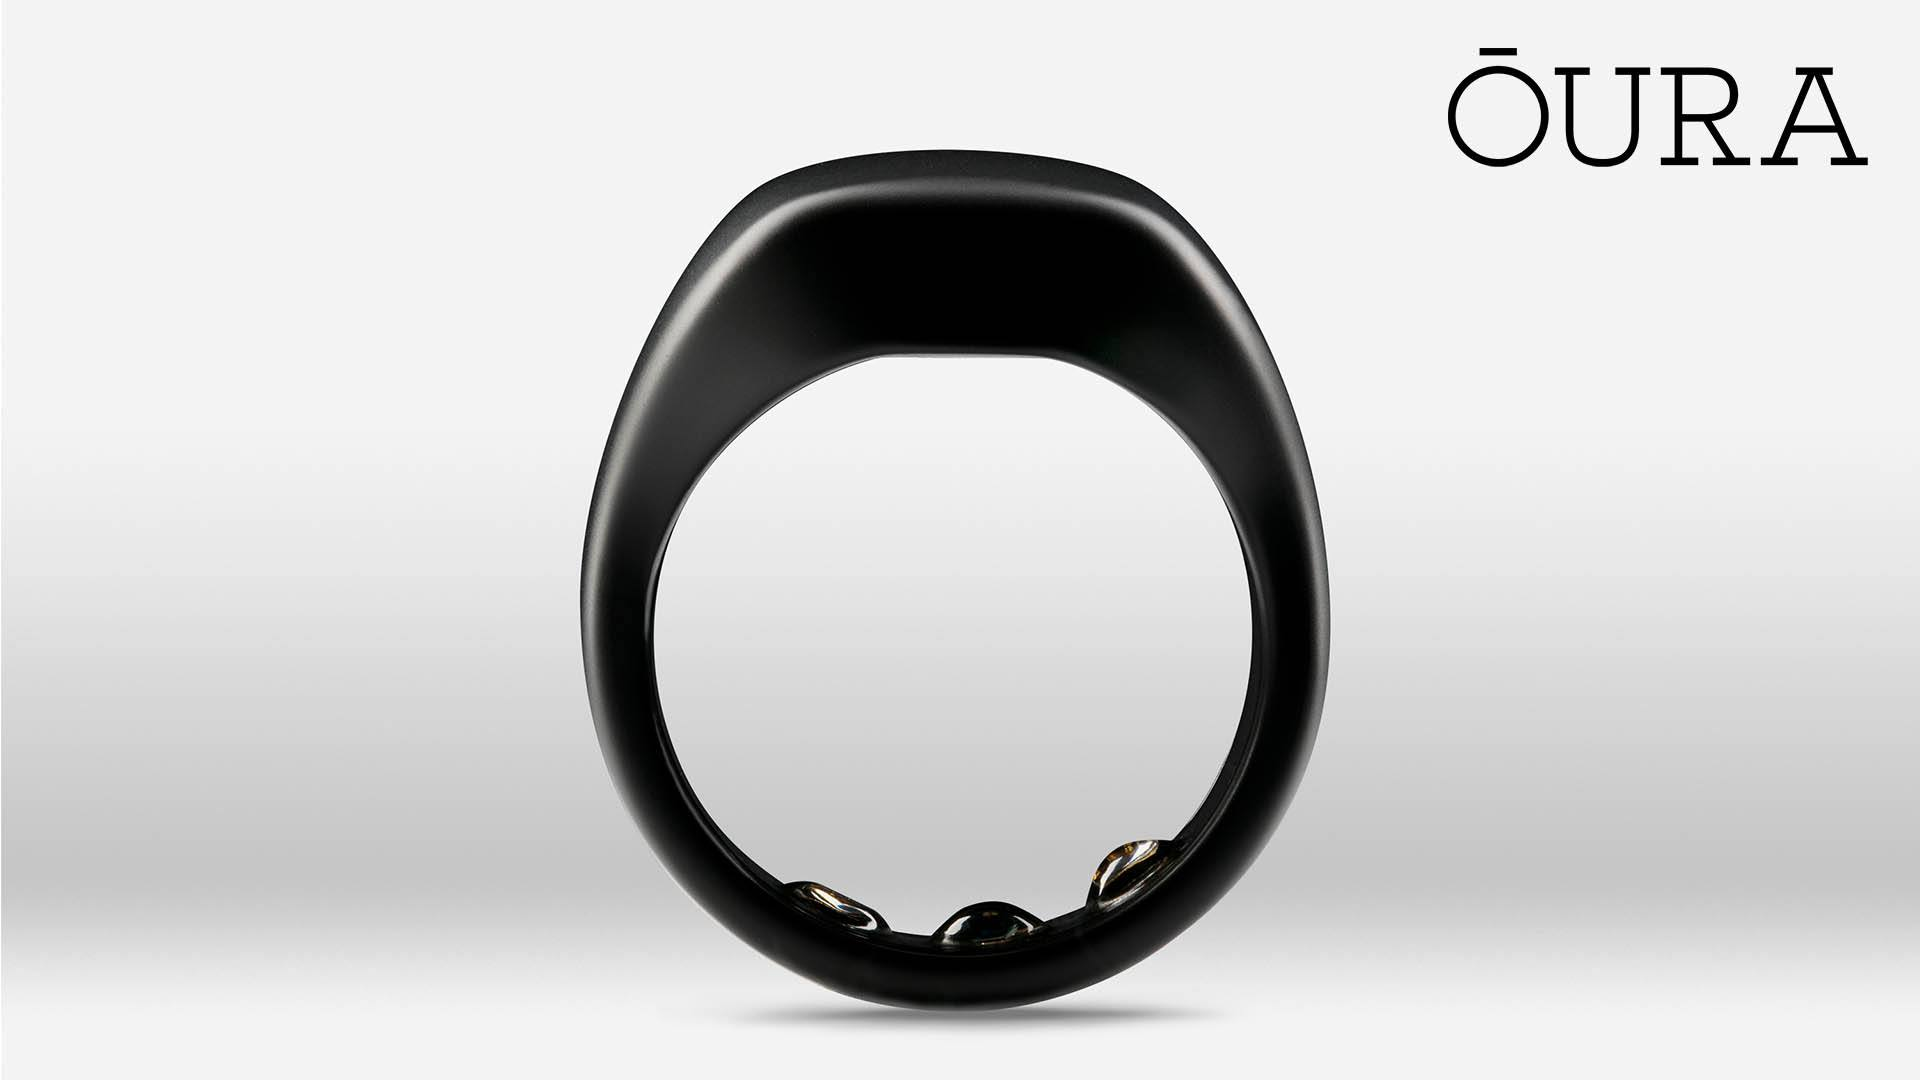 oura ring pemf devices side effects